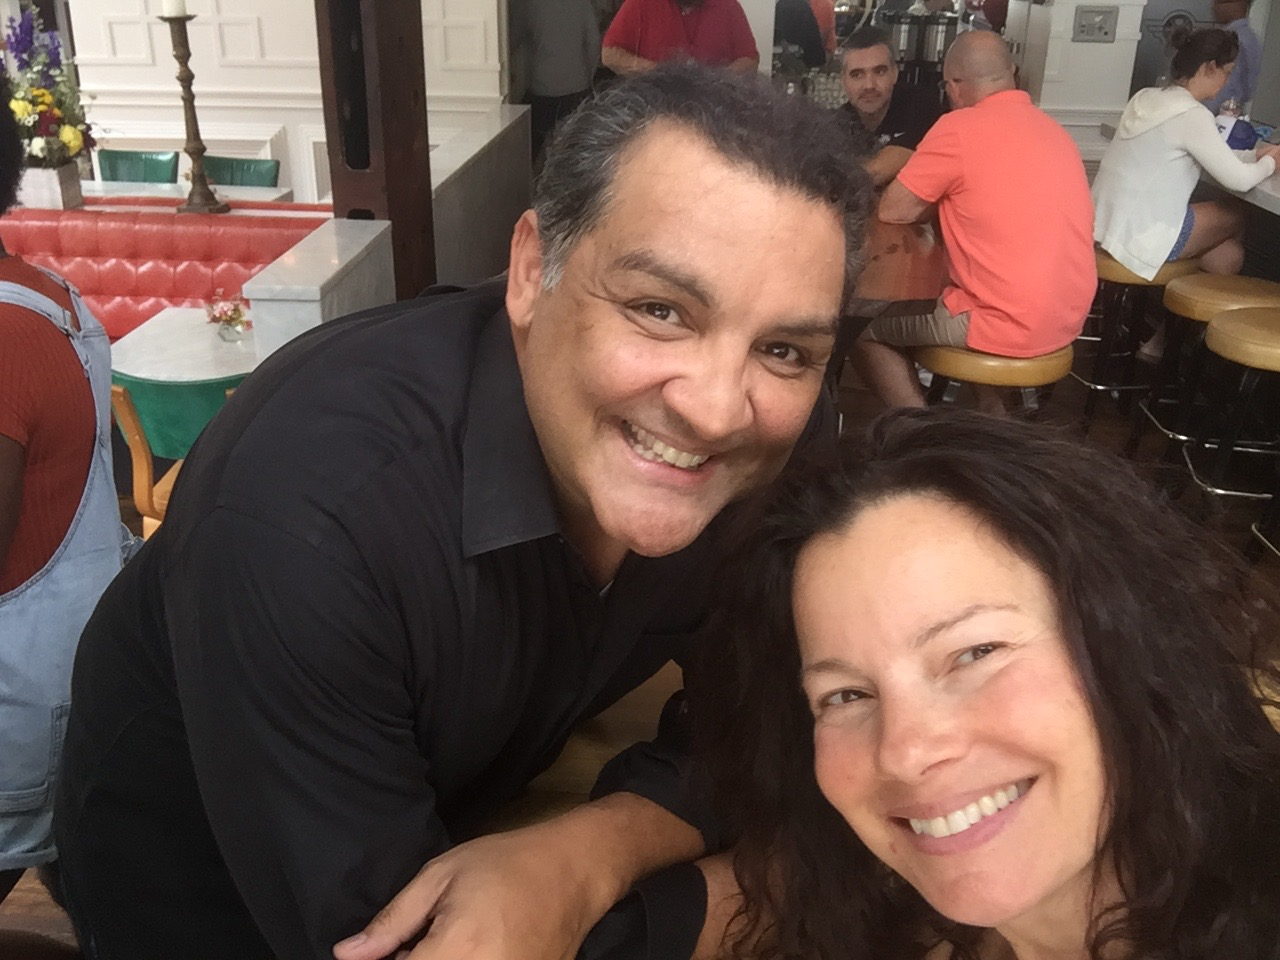 Fran Drescher was extremely pleasant in our short chat